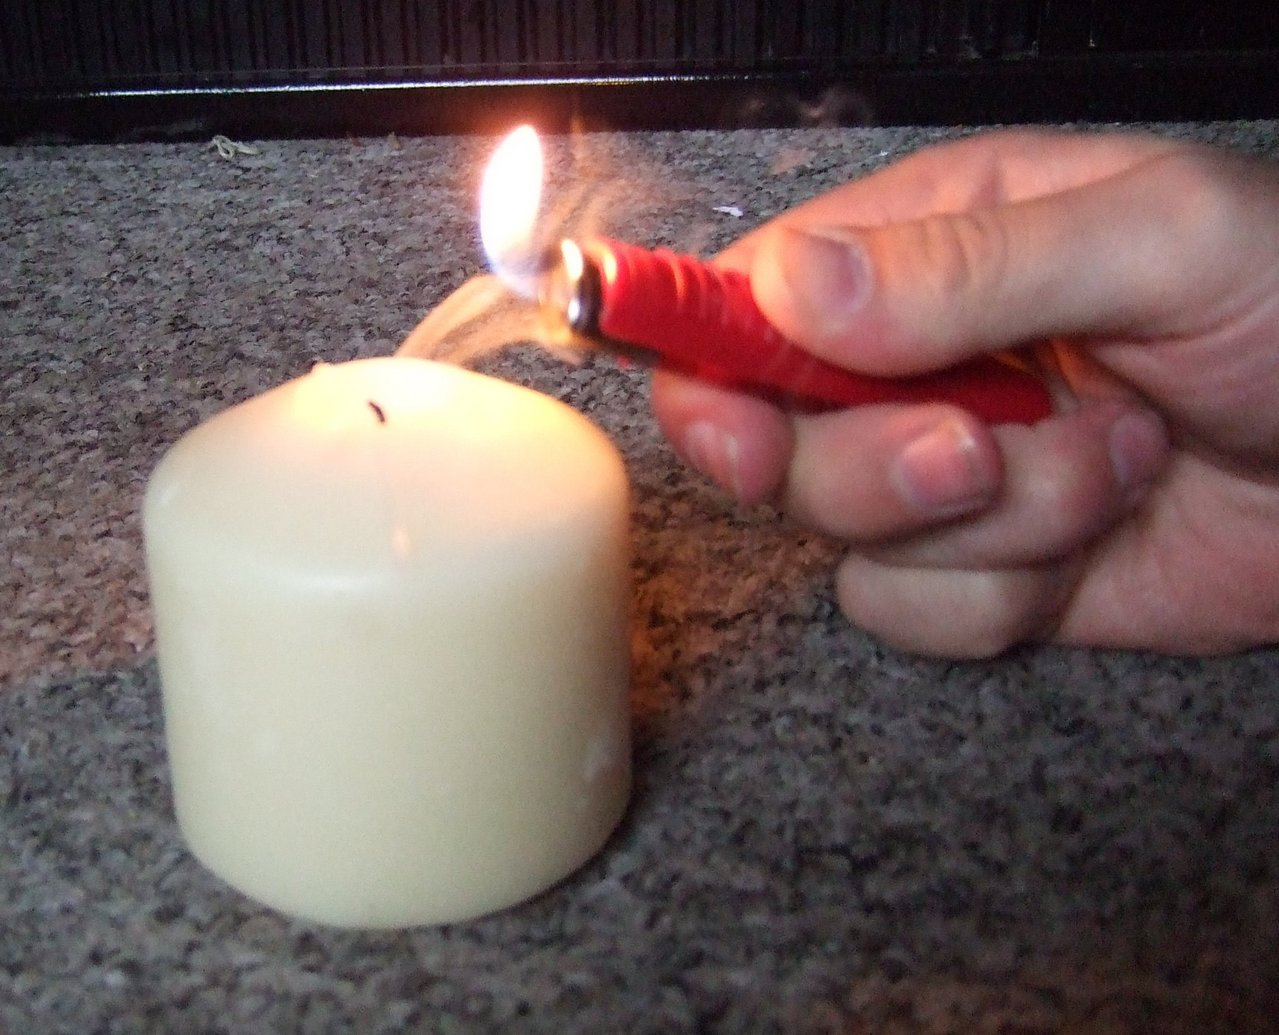 Light the smoke coming from the candle